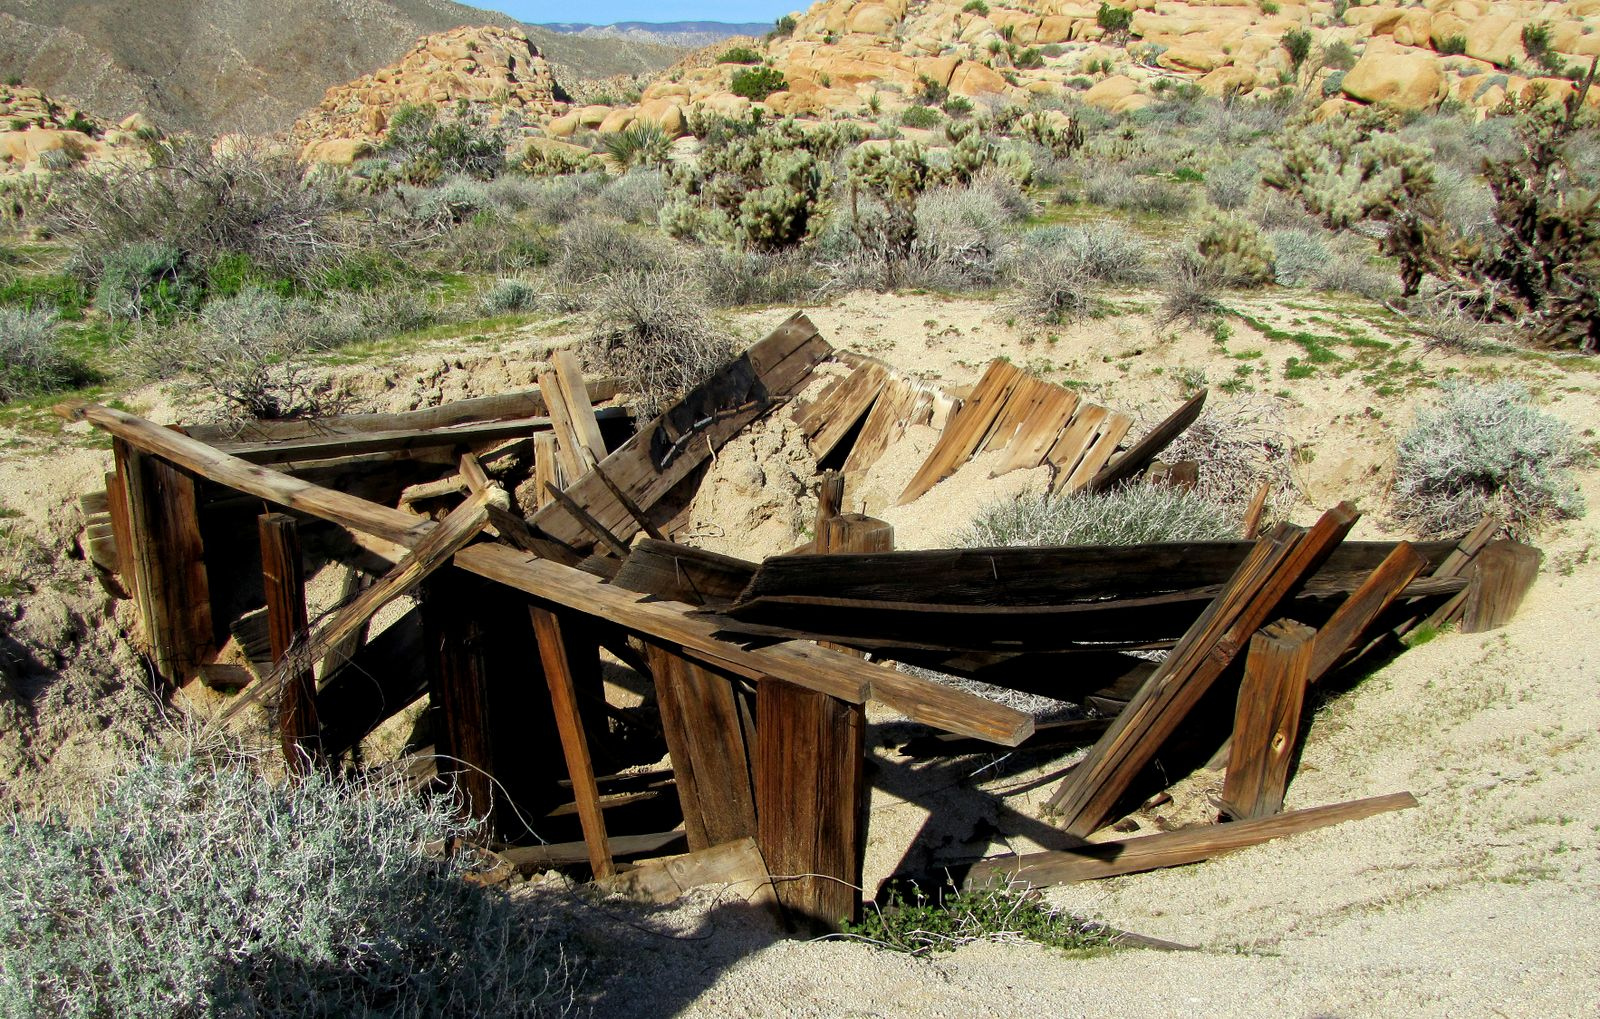 Remains of the Railroad Construction Camp.